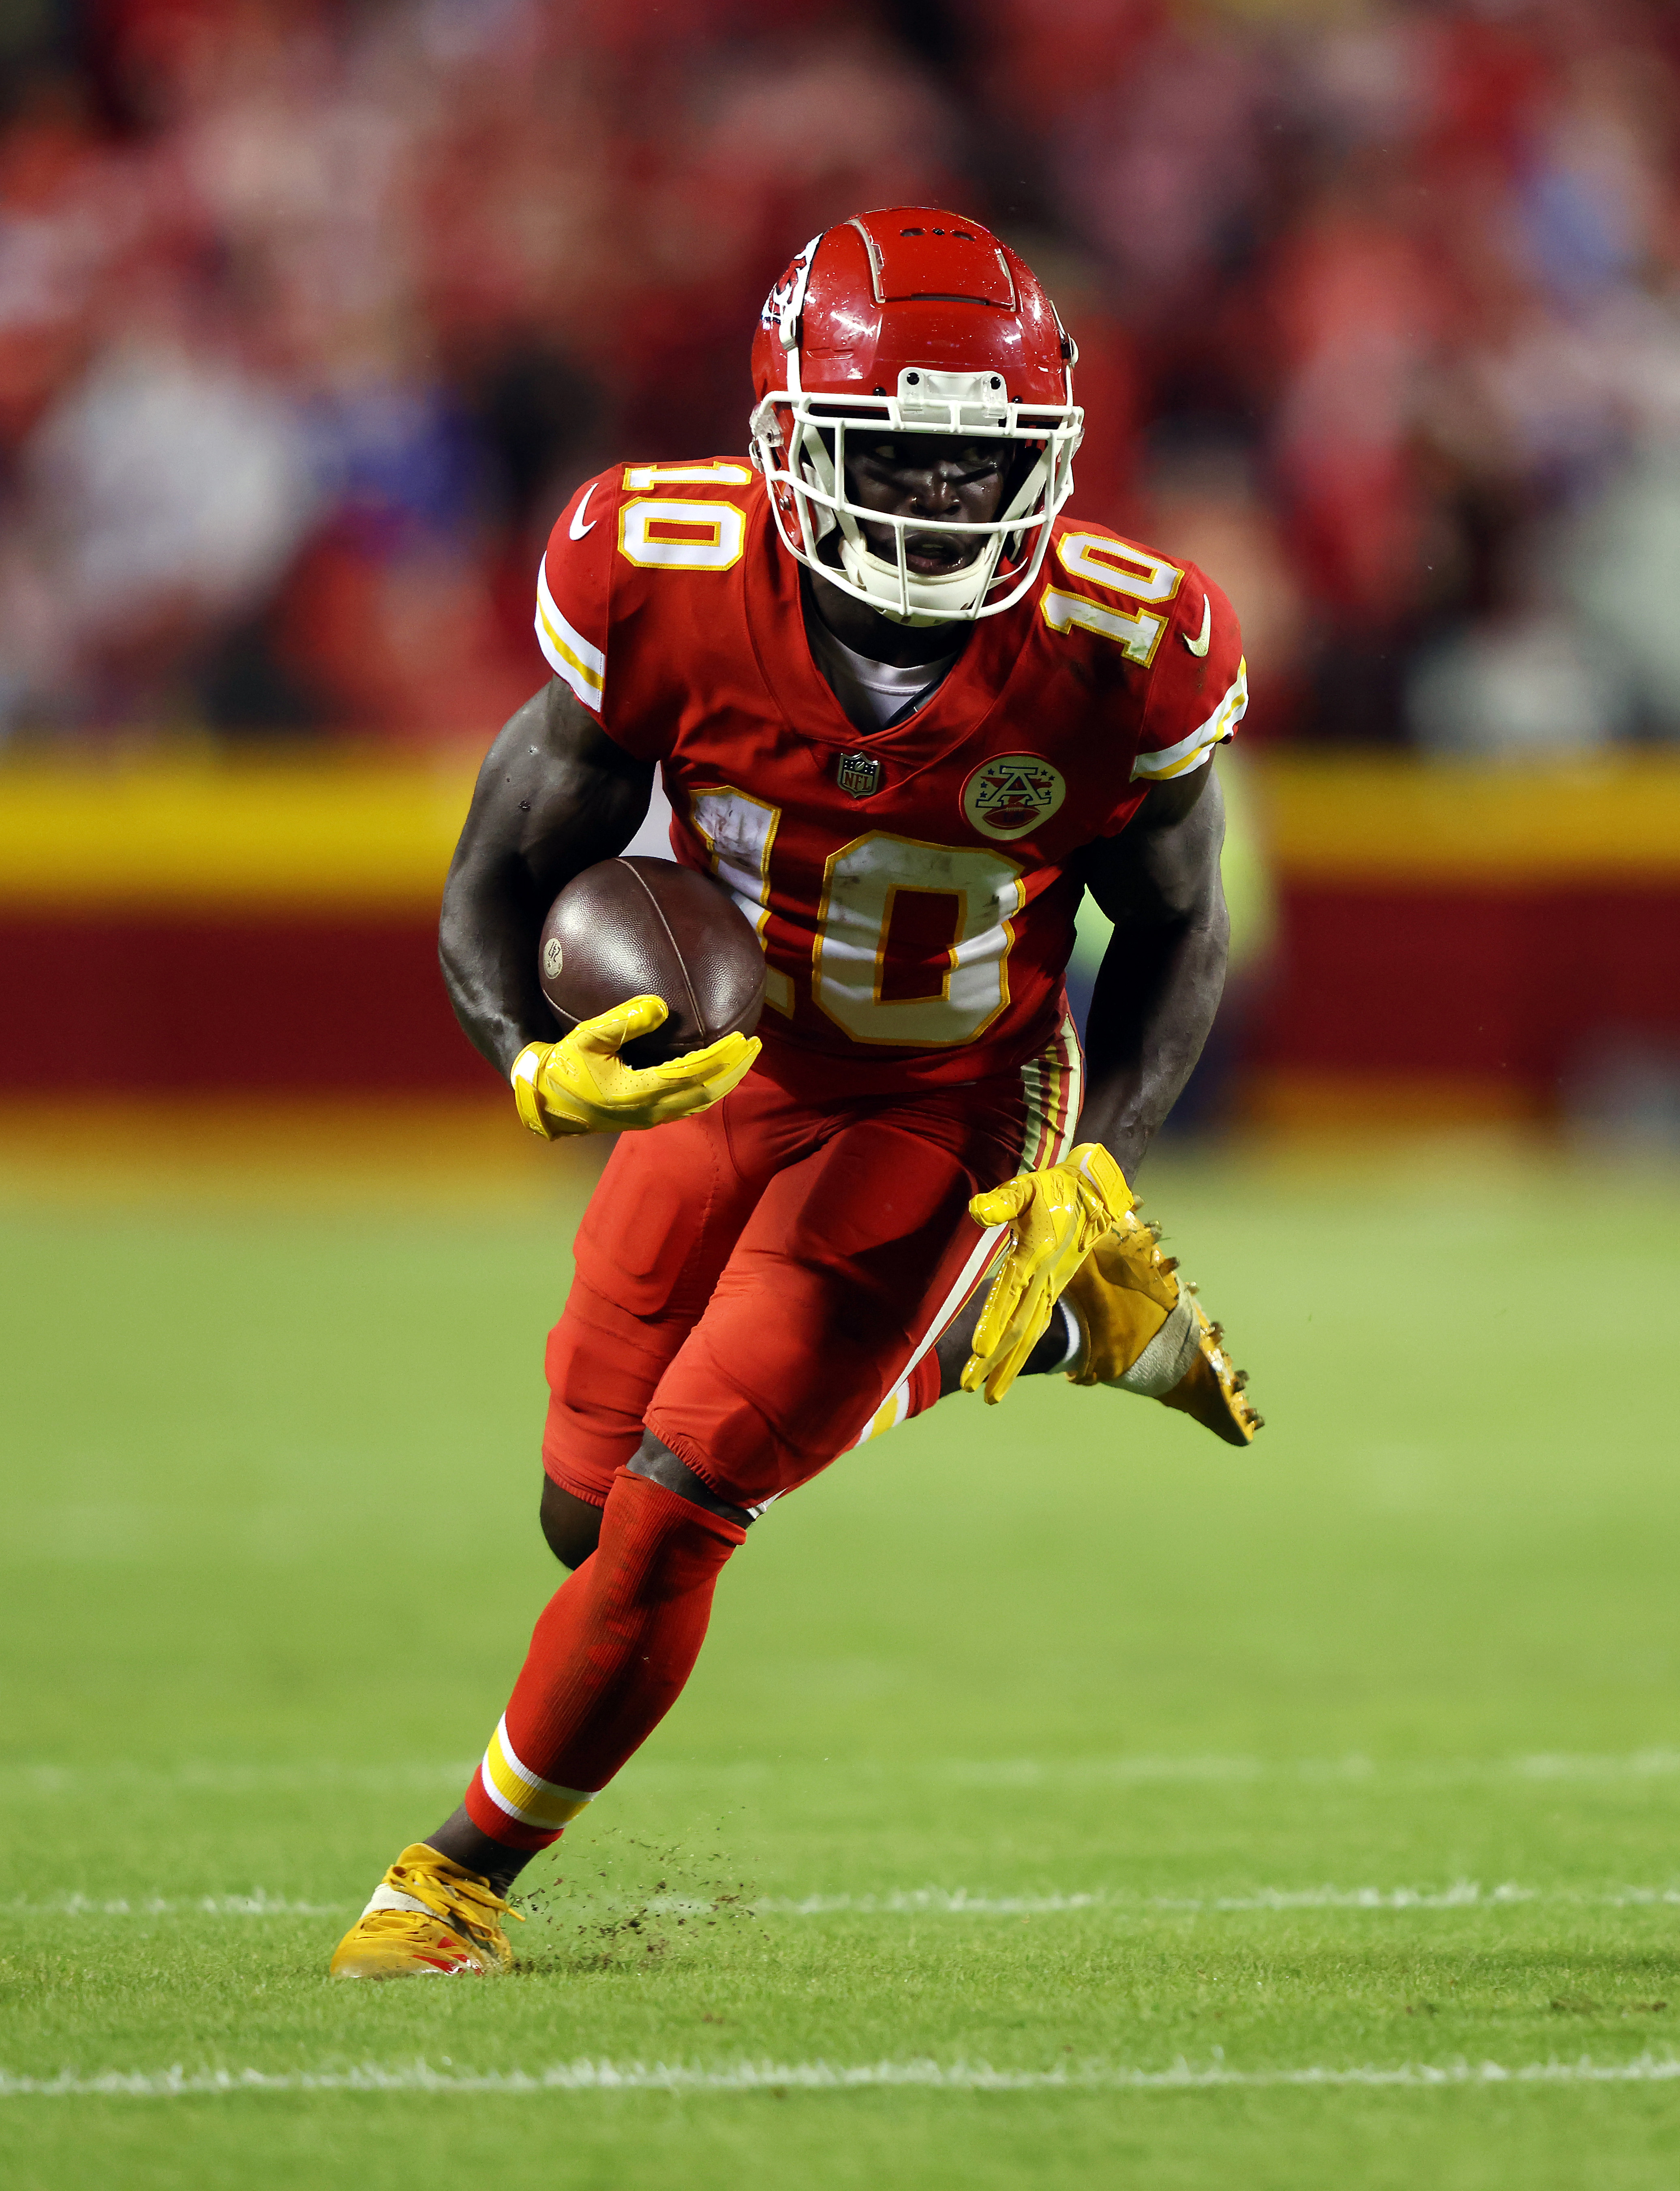 Wide-receiver Tyreek Hill #10 of the Kansas City Chiefs carries the ball during the game against the Buffalo Bills at Arrowhead Stadium on October 10, 2021 in Kansas City, Missouri.